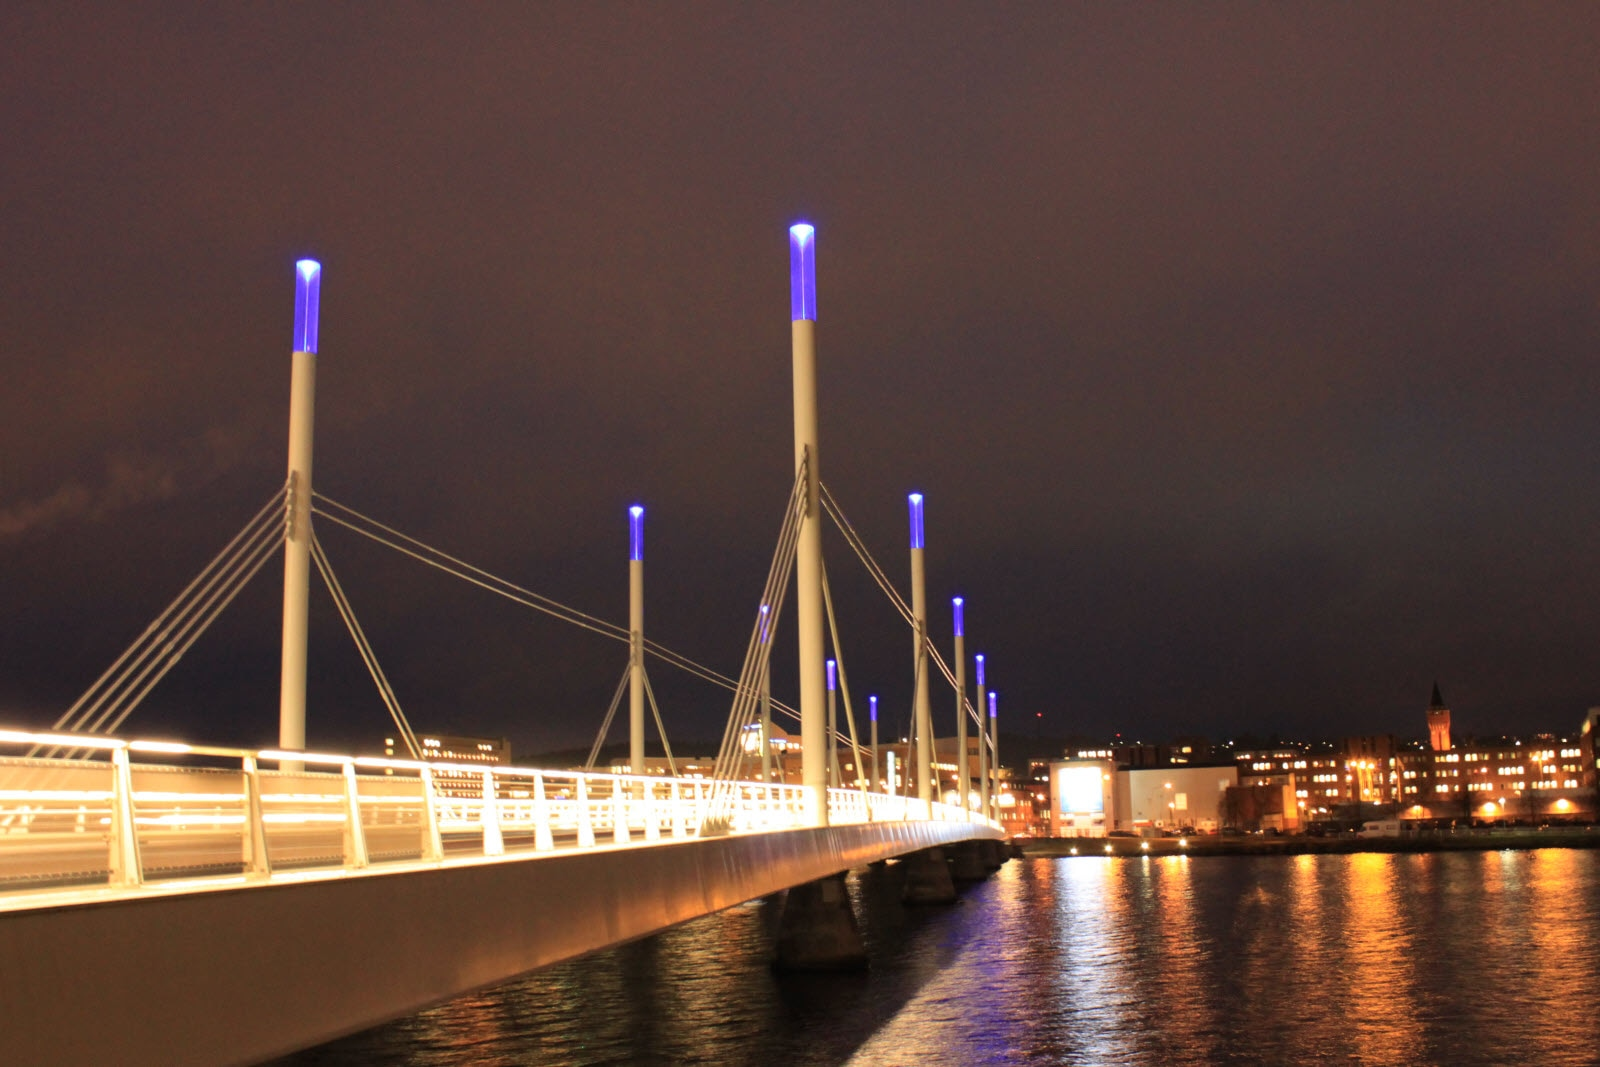 Bridge in Jonkoping